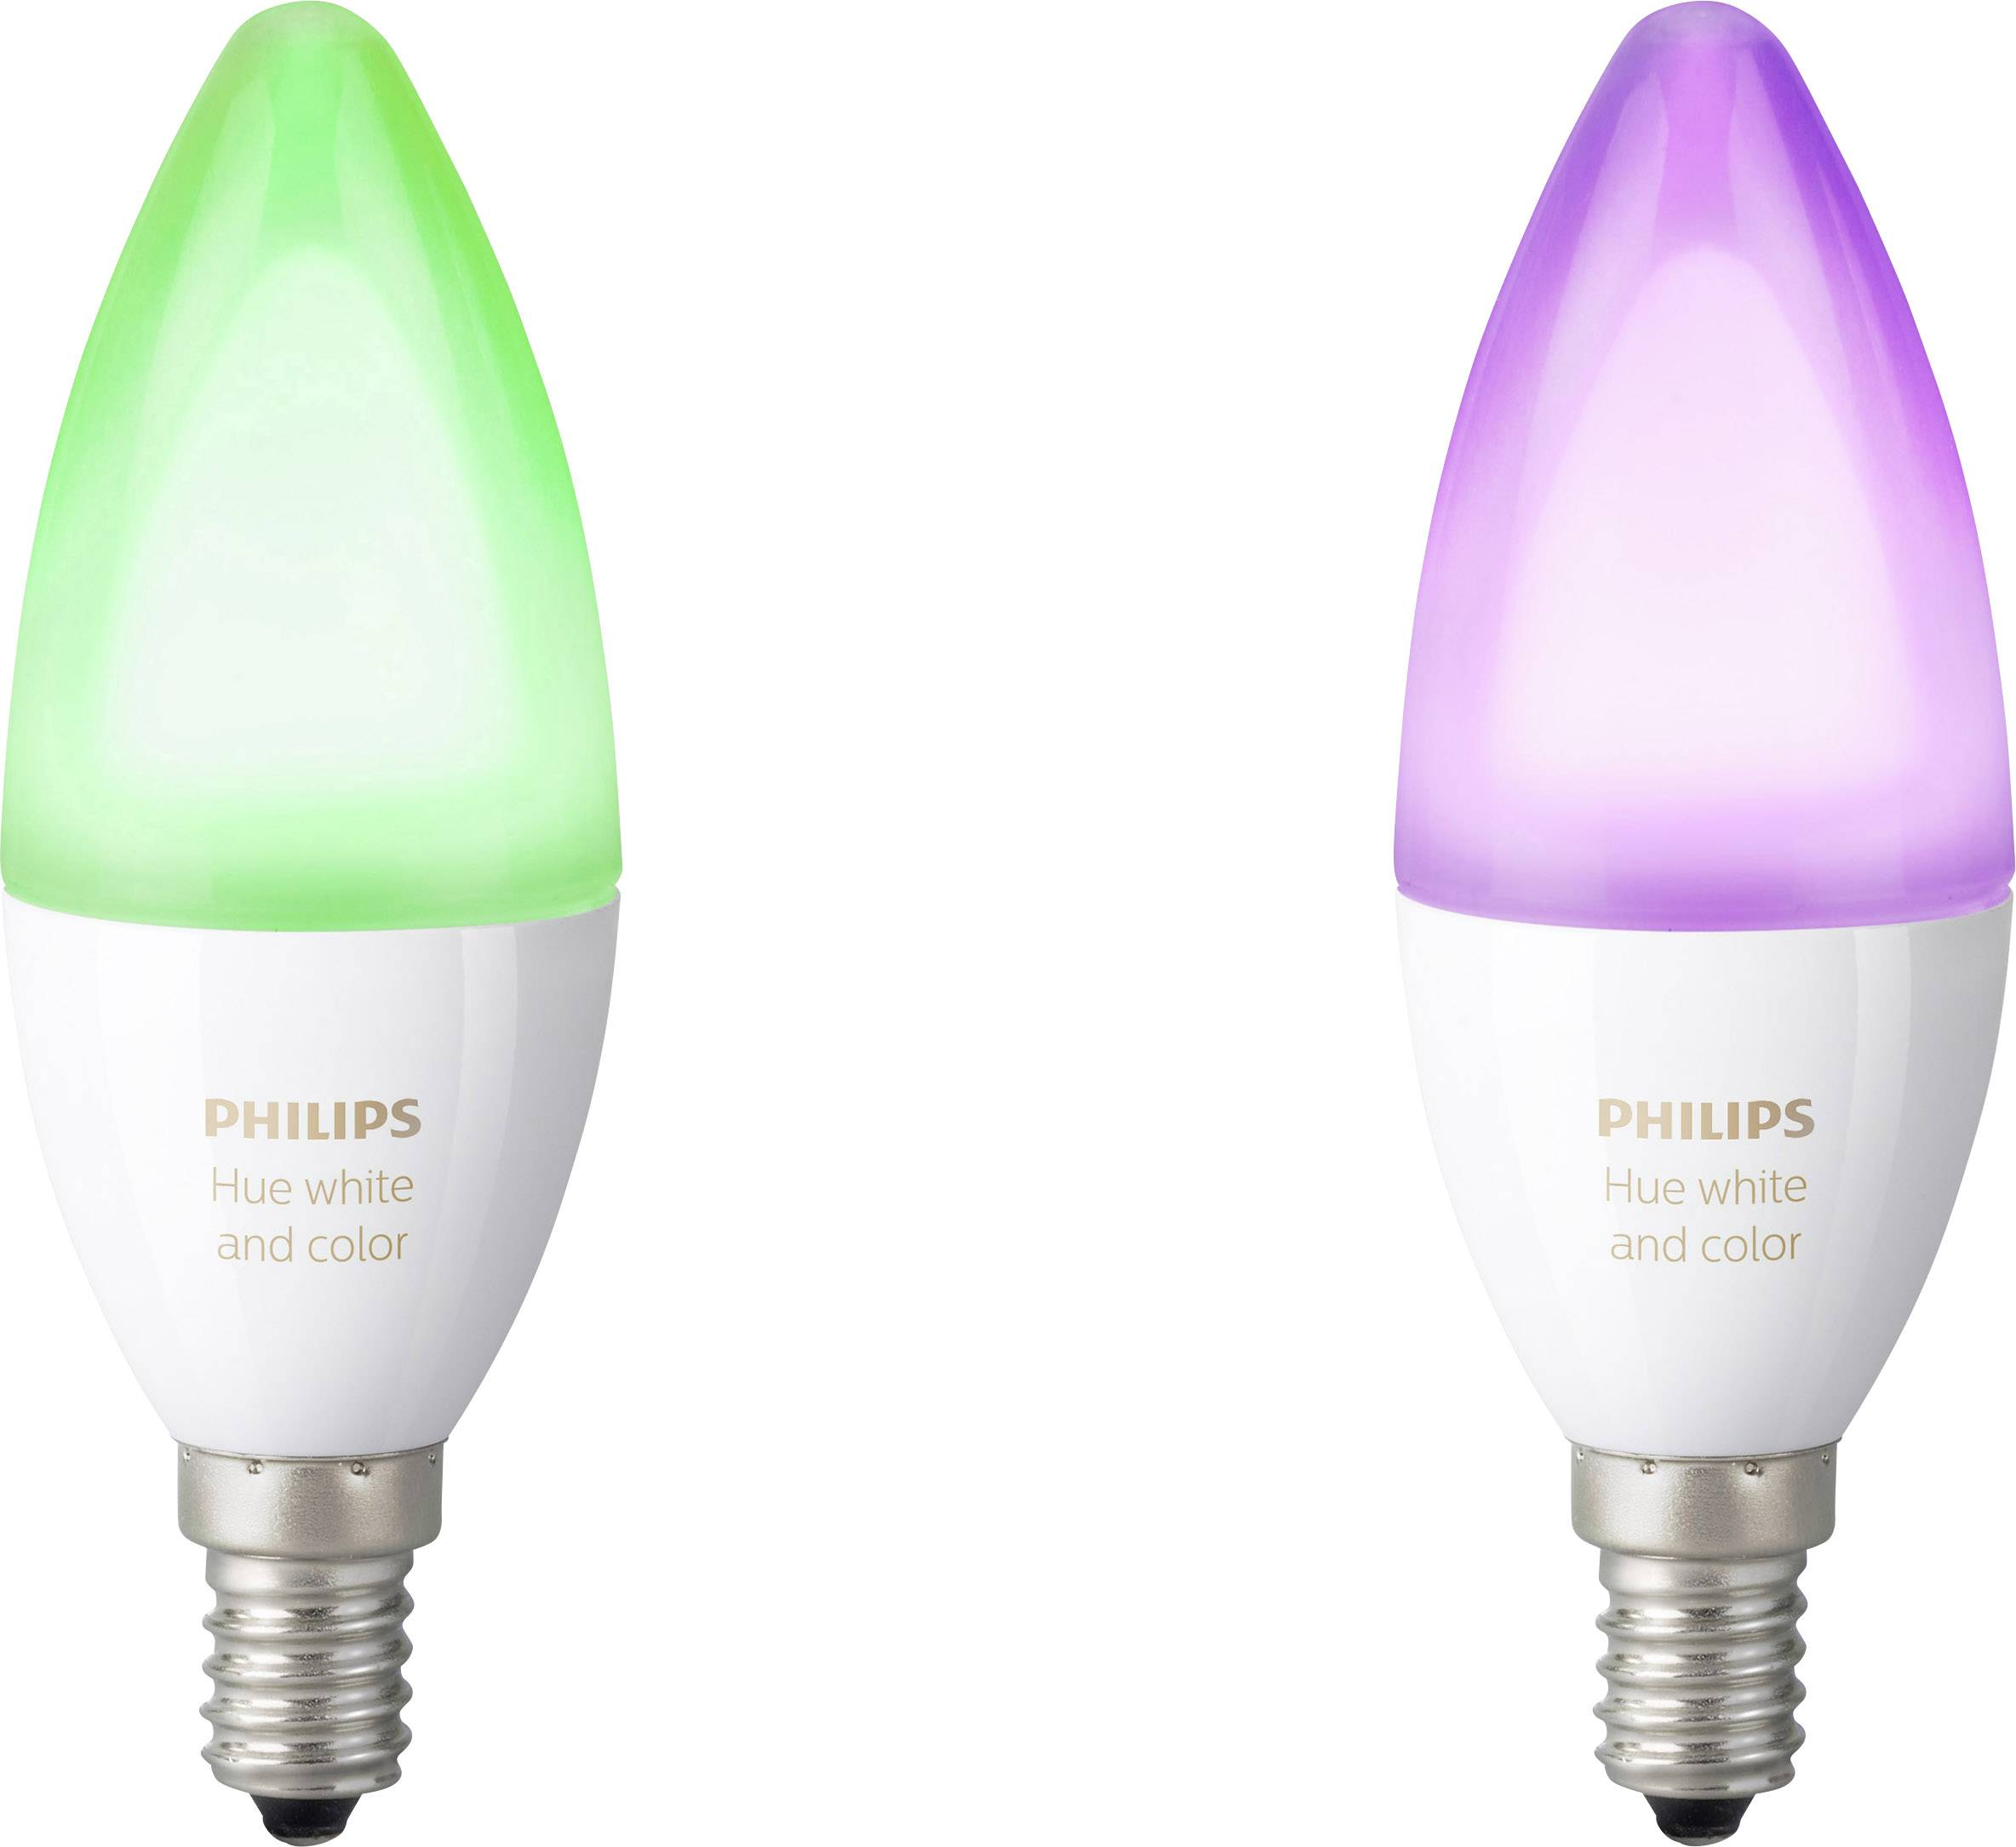 db75bc1943b Philips Lighting Hue LED-pære (sæt med to styk) White and color ambiance  E14 6.5 W RGBW 2 stk